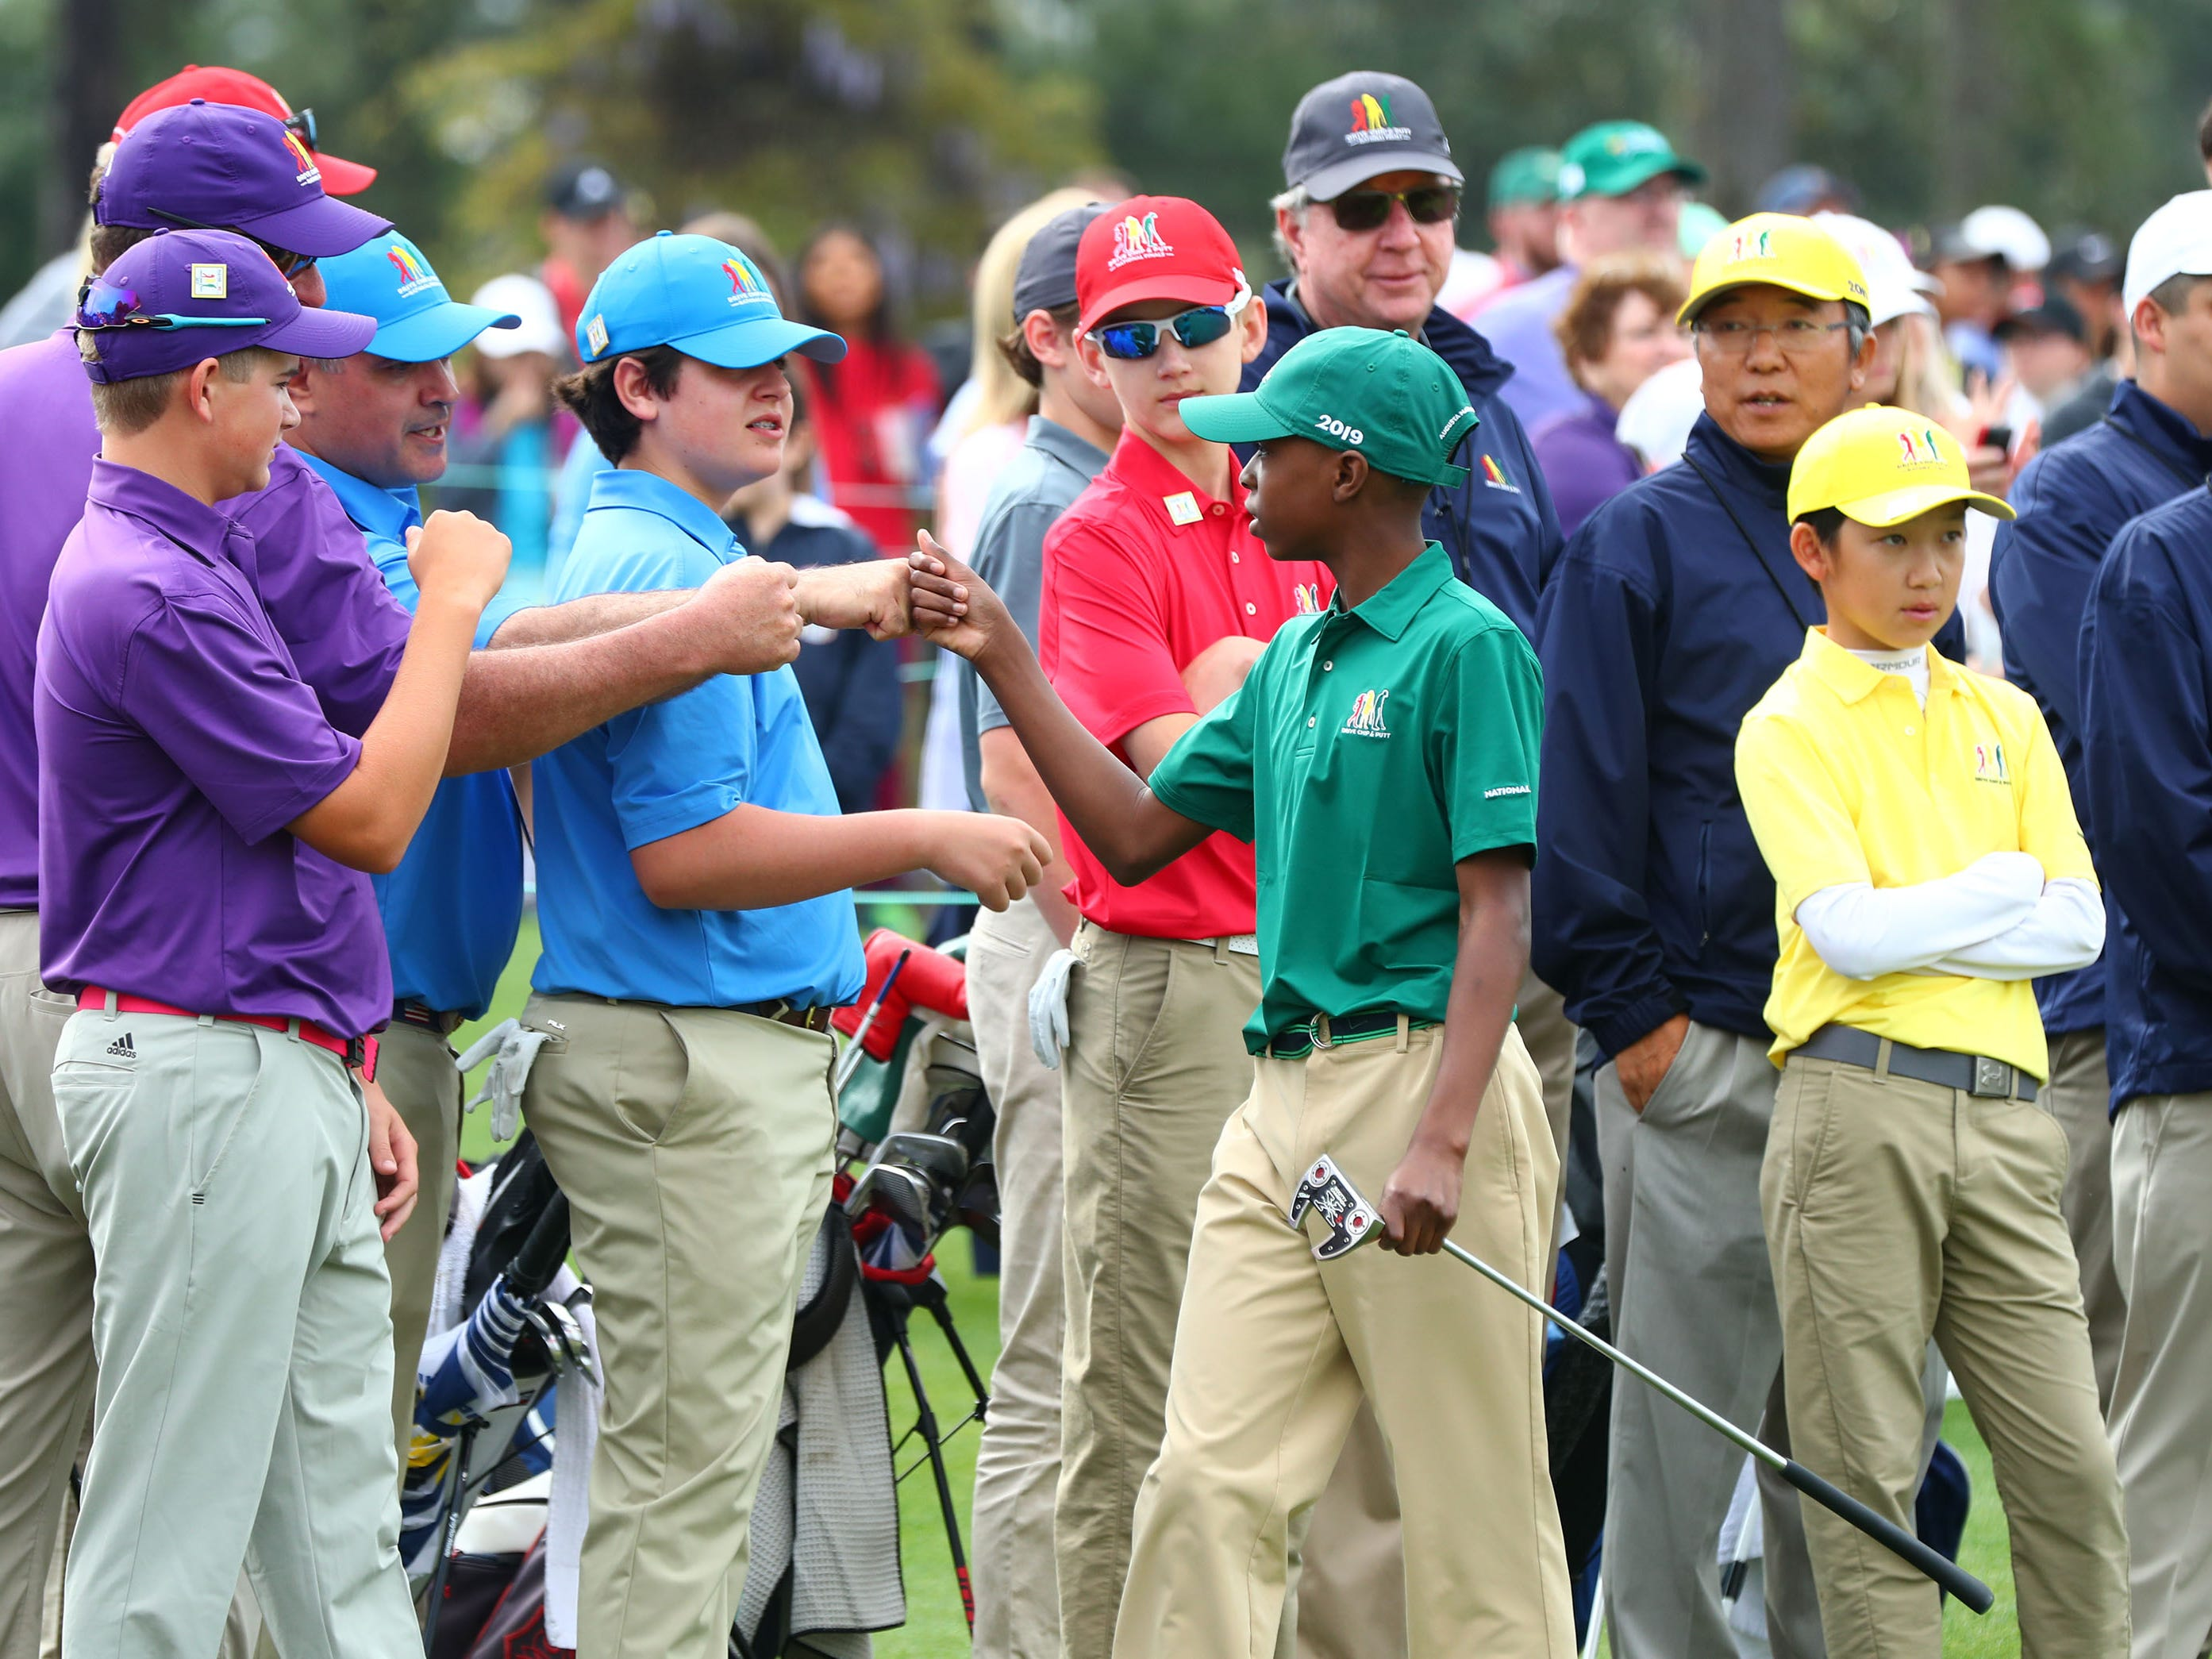 Apr 7, 2019; Augusta, GA, USA; Overall championÊMatthew Vital of Bethlehem, PA.Ê(green cap) for the boys 11-12 age group, bumps fists with after putting during the finals of the Drive, Chip and Putt competition at Augusta National Golf Club. Mandatory Credit: Rob Schumacher-USA TODAY Sports